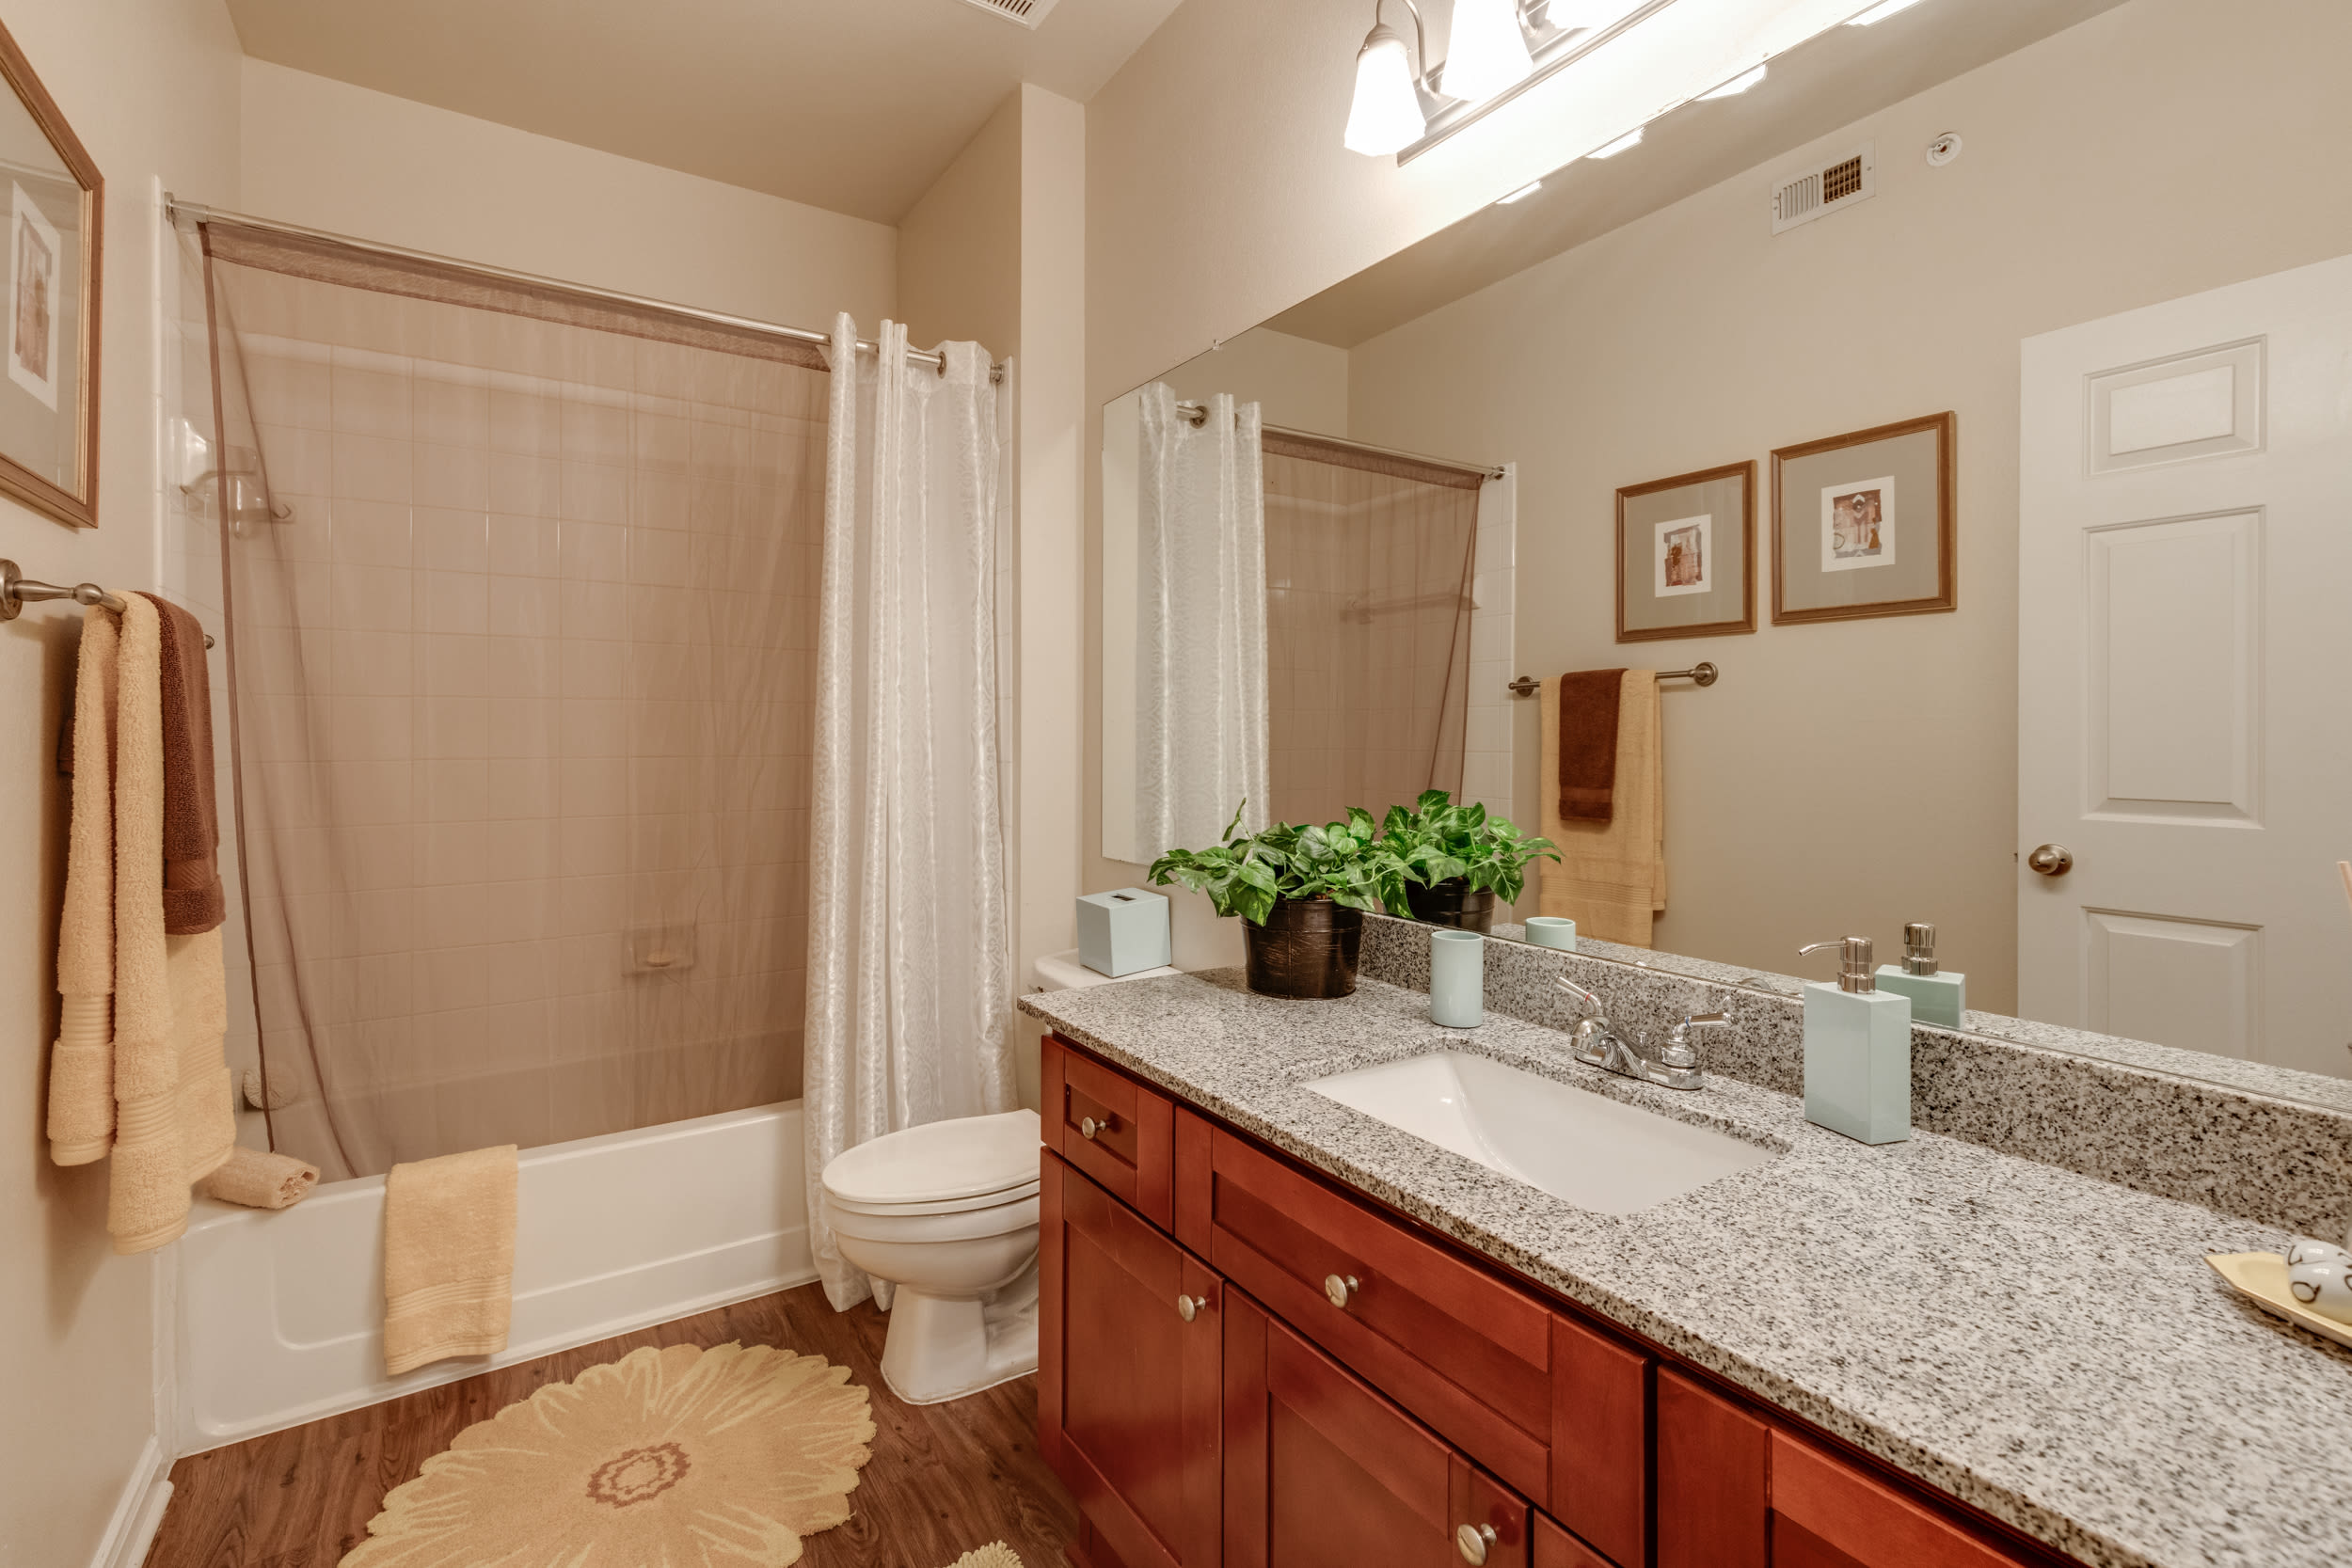 Spacious master bedroom in model home at The View at Lakeside in Lewisville, Texas